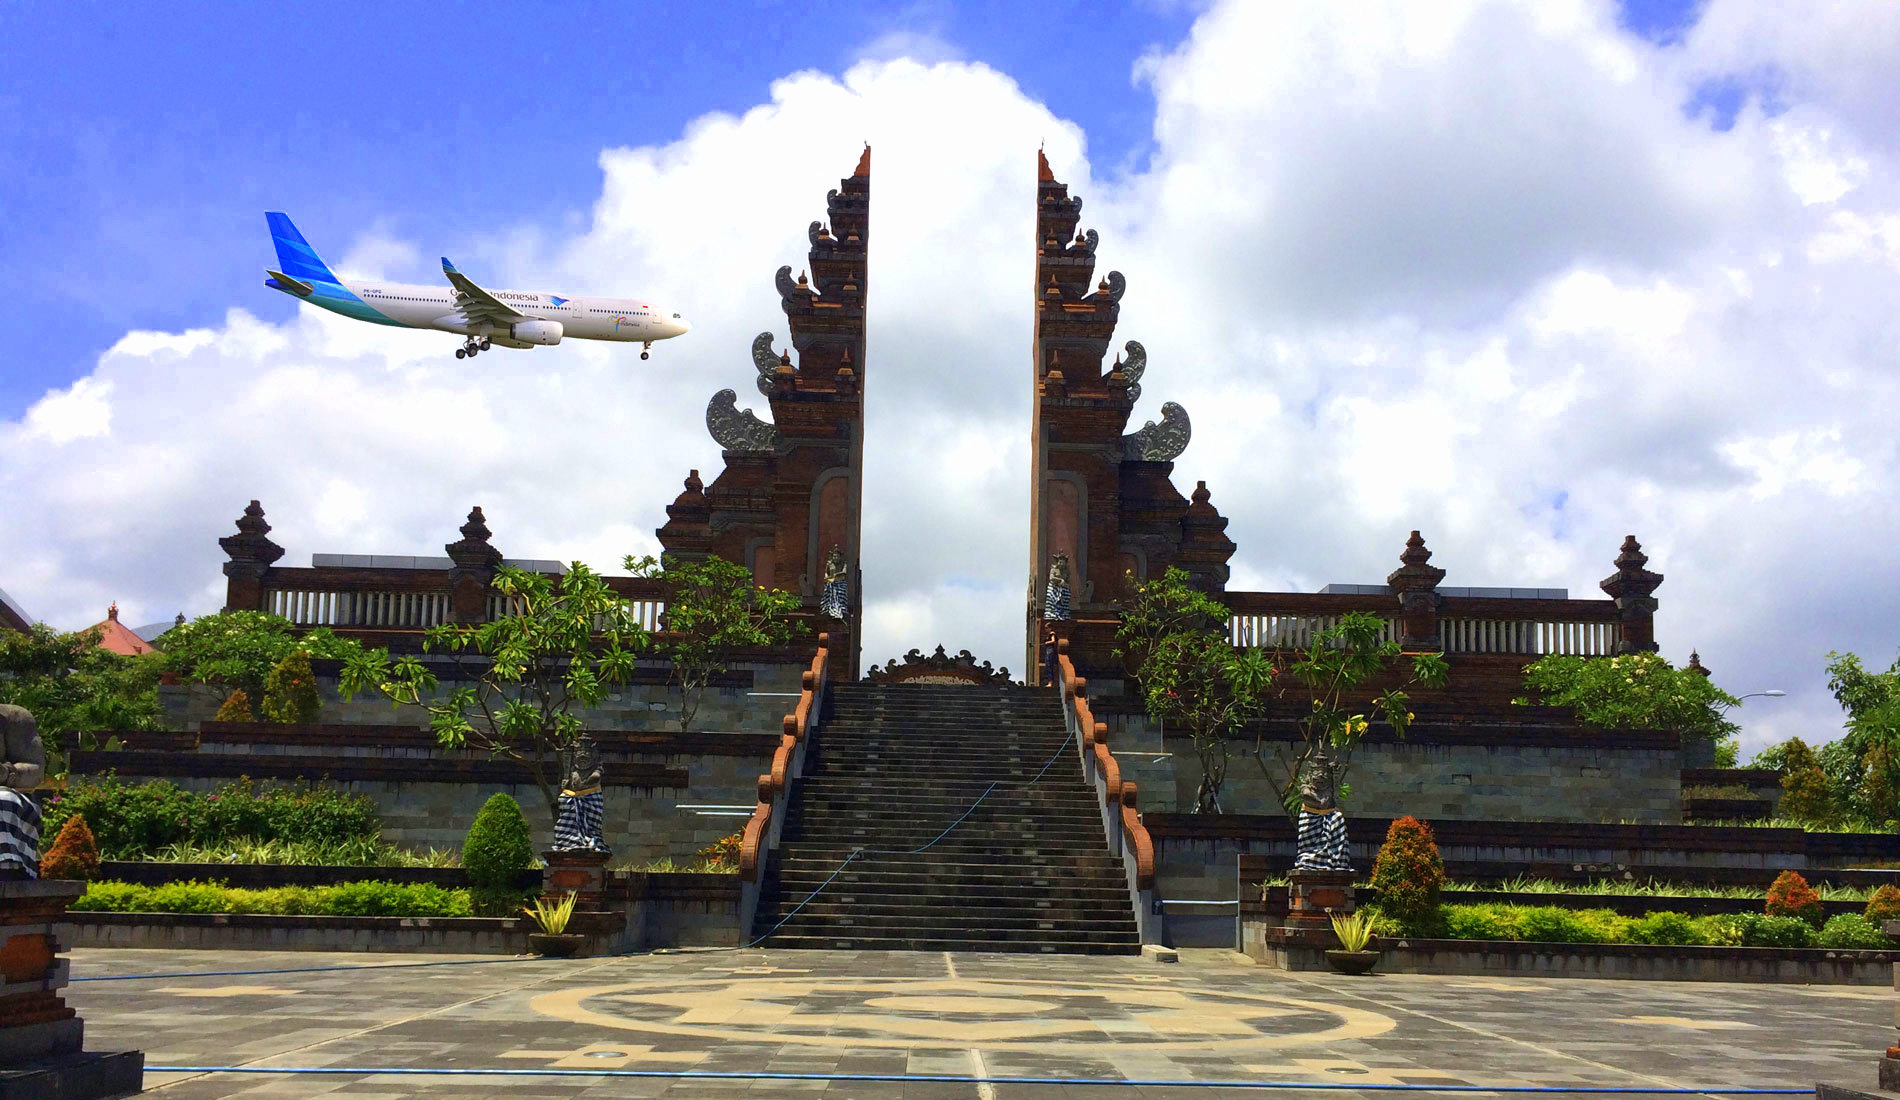 Bali International Airport - Things To Do in Bali Tours Activities